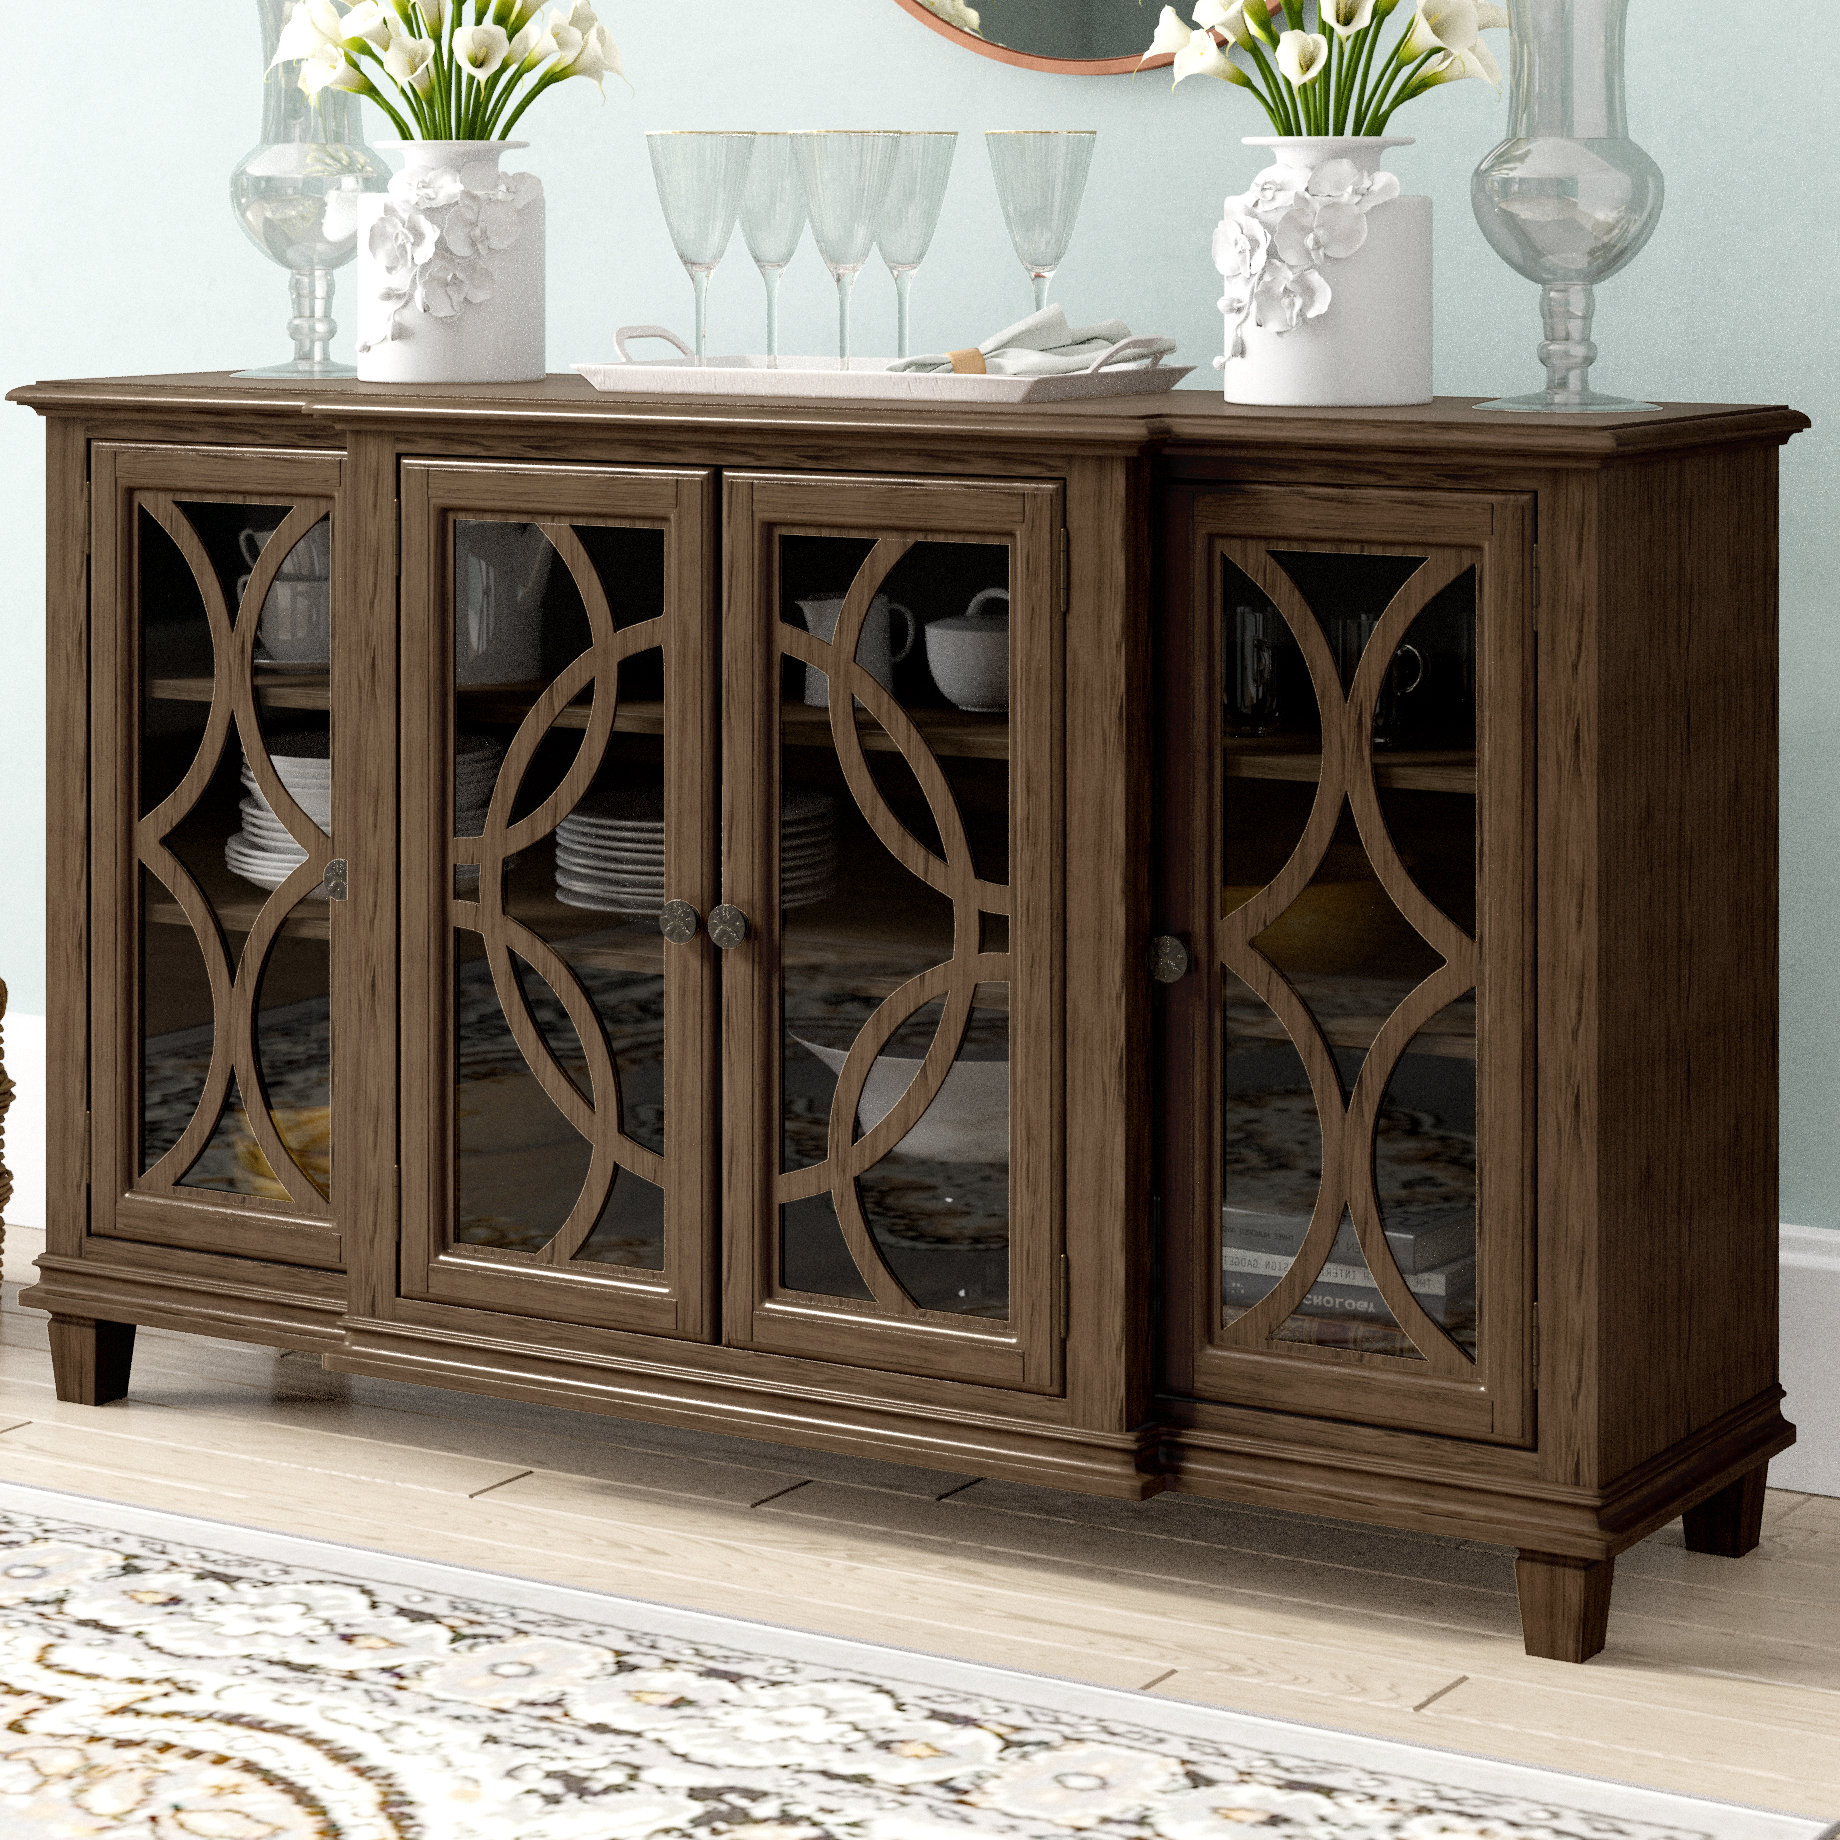 Farmhouse & Rustic Dark Brown Wood Sideboards & Buffets Intended For Well Known Seiling Sideboards (Gallery 9 of 20)